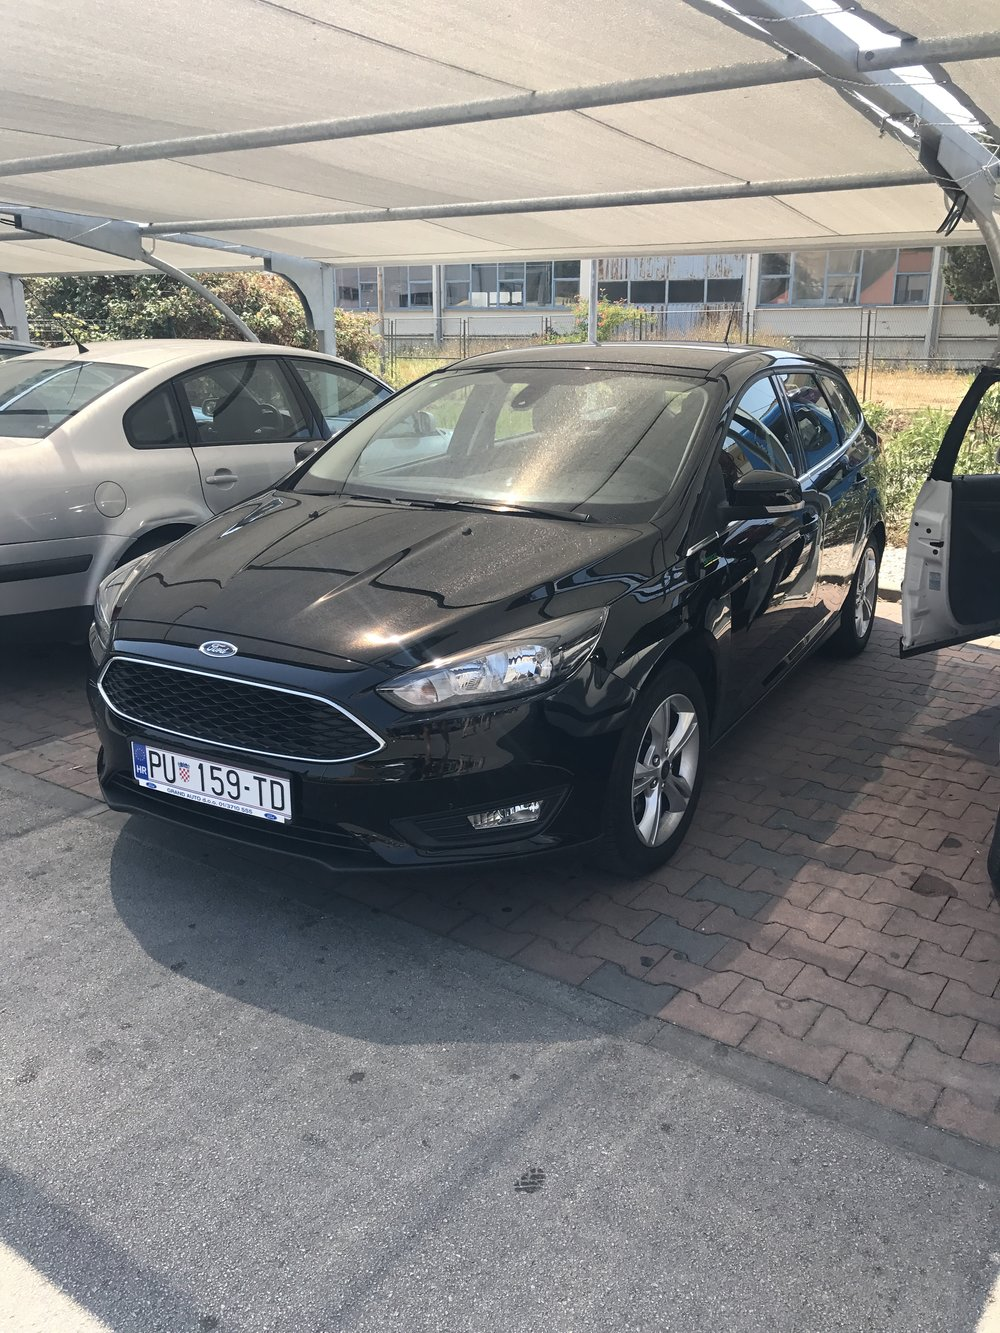 We rented a car from Europcar to be picked up from Dubrovnik airport to get us to Zadar